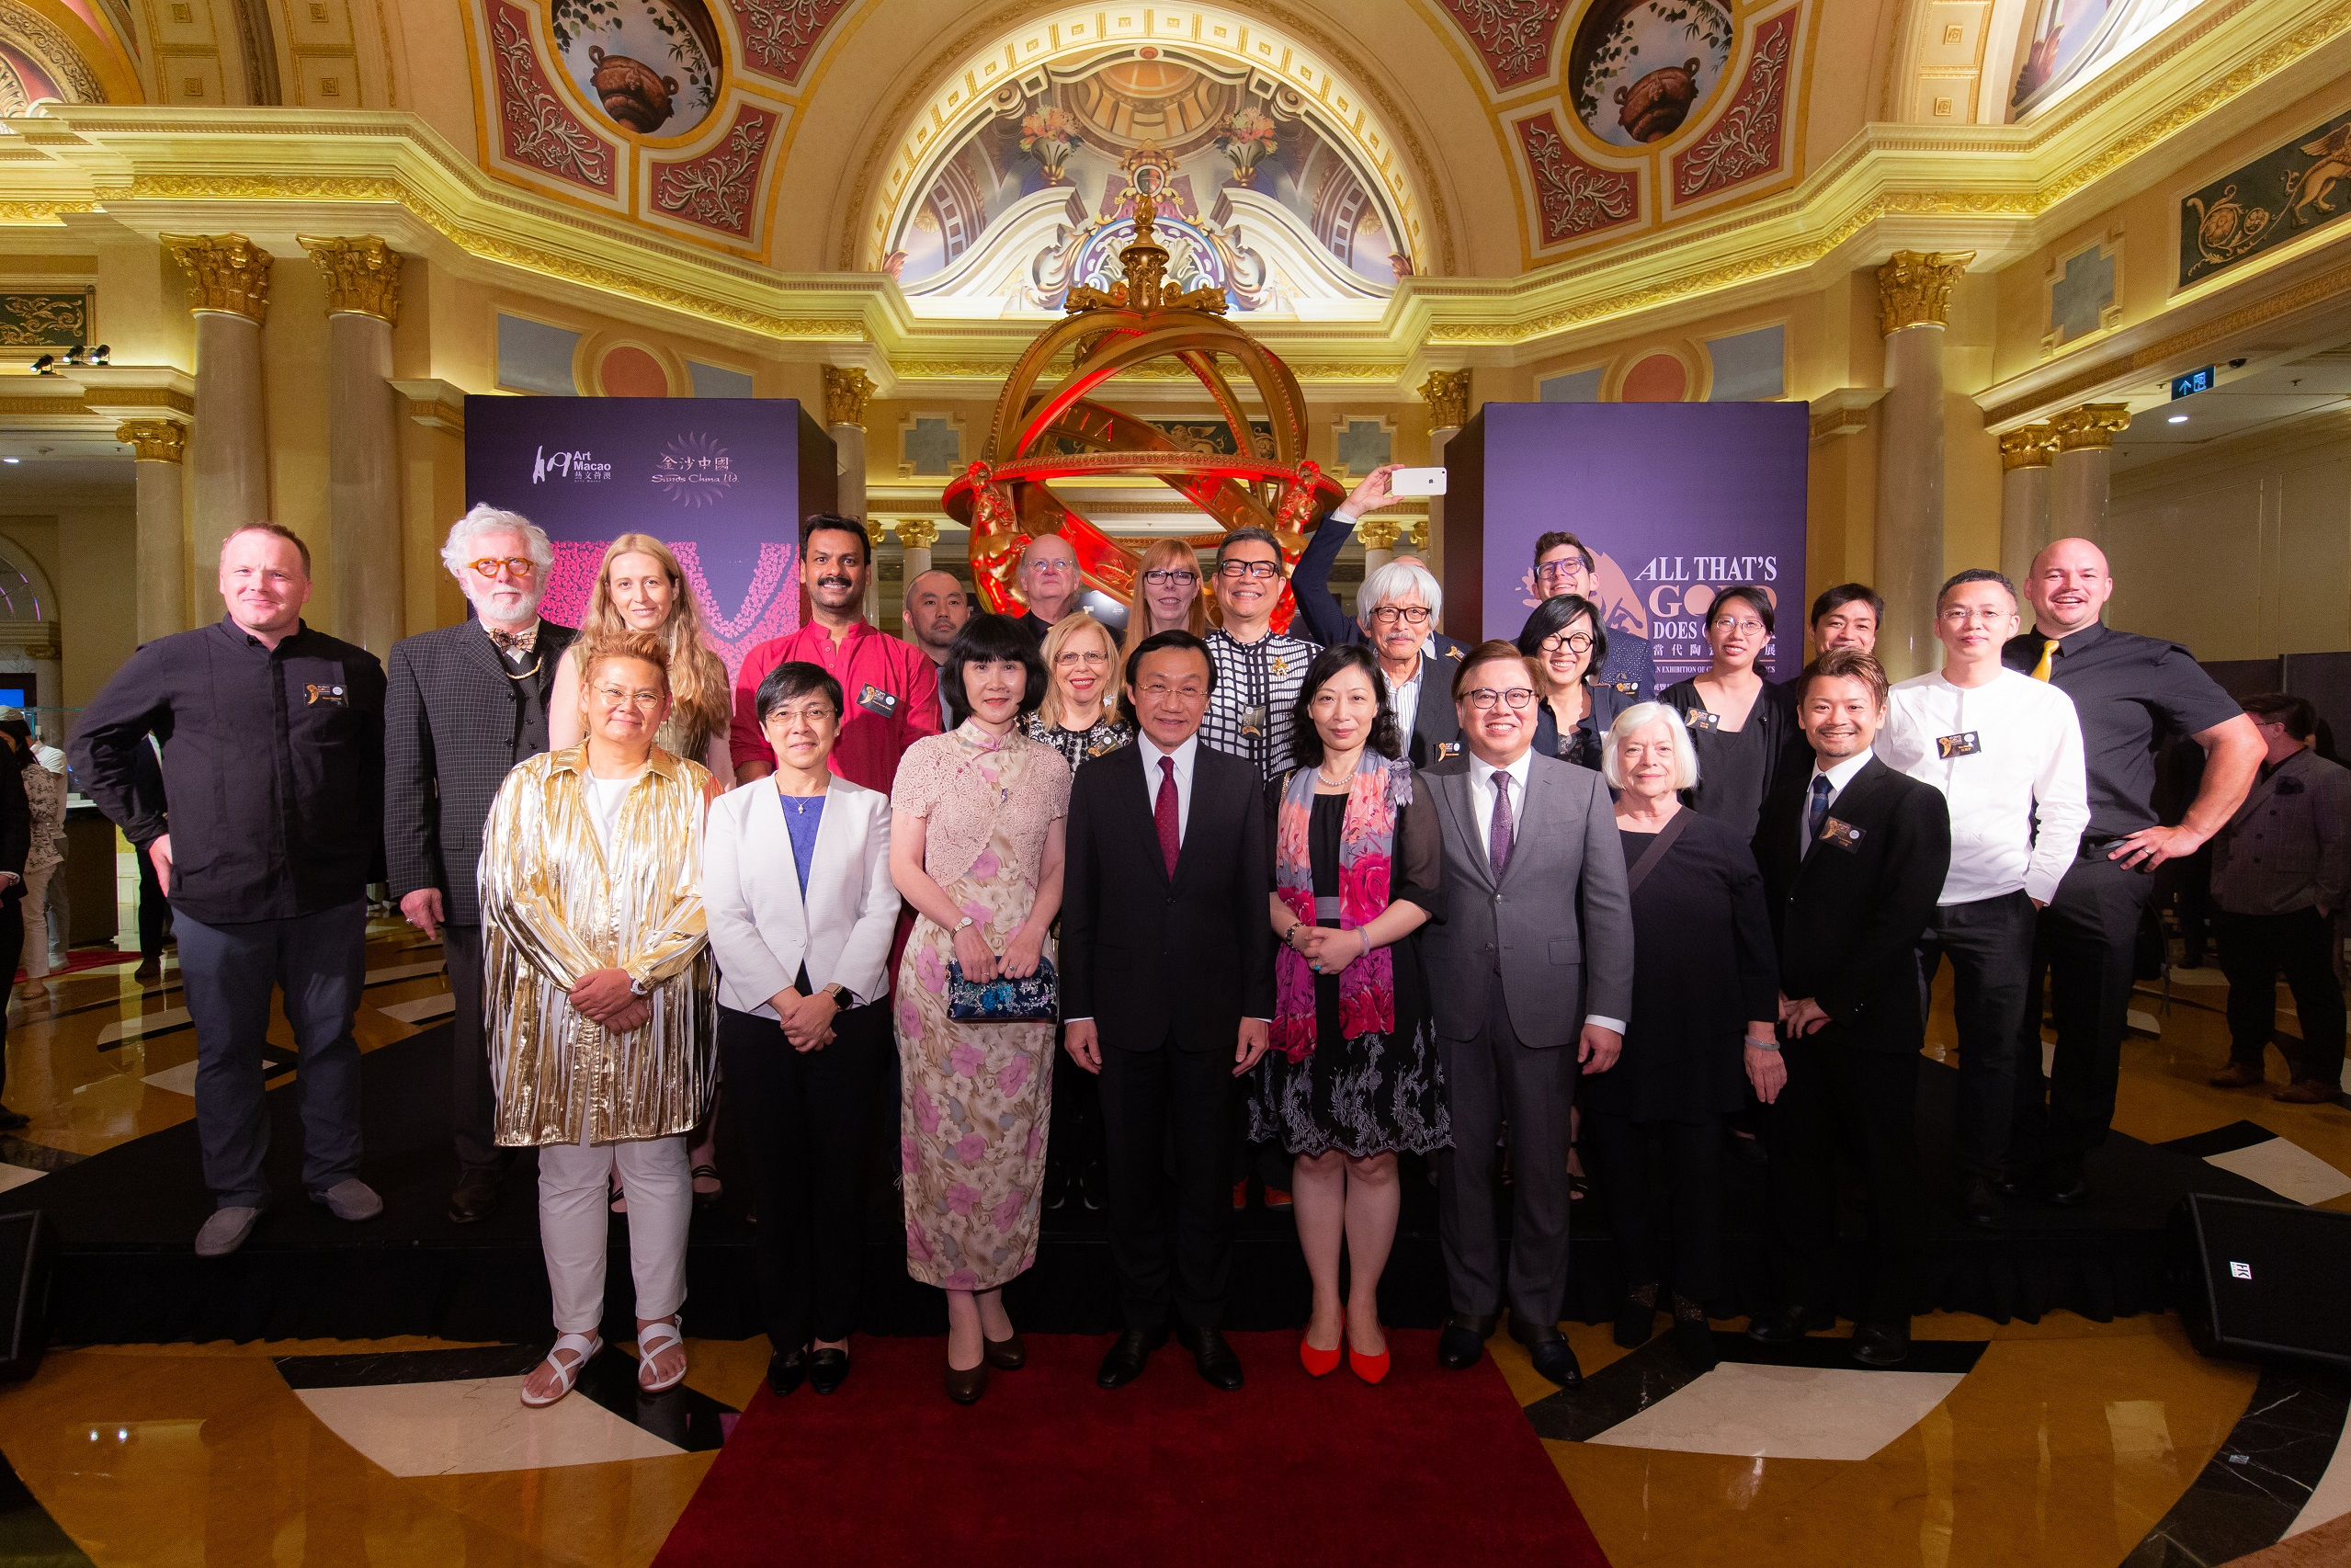 Art Macao Caroline Yi Cheng All That's Gold Does Glitter exhibition group photo